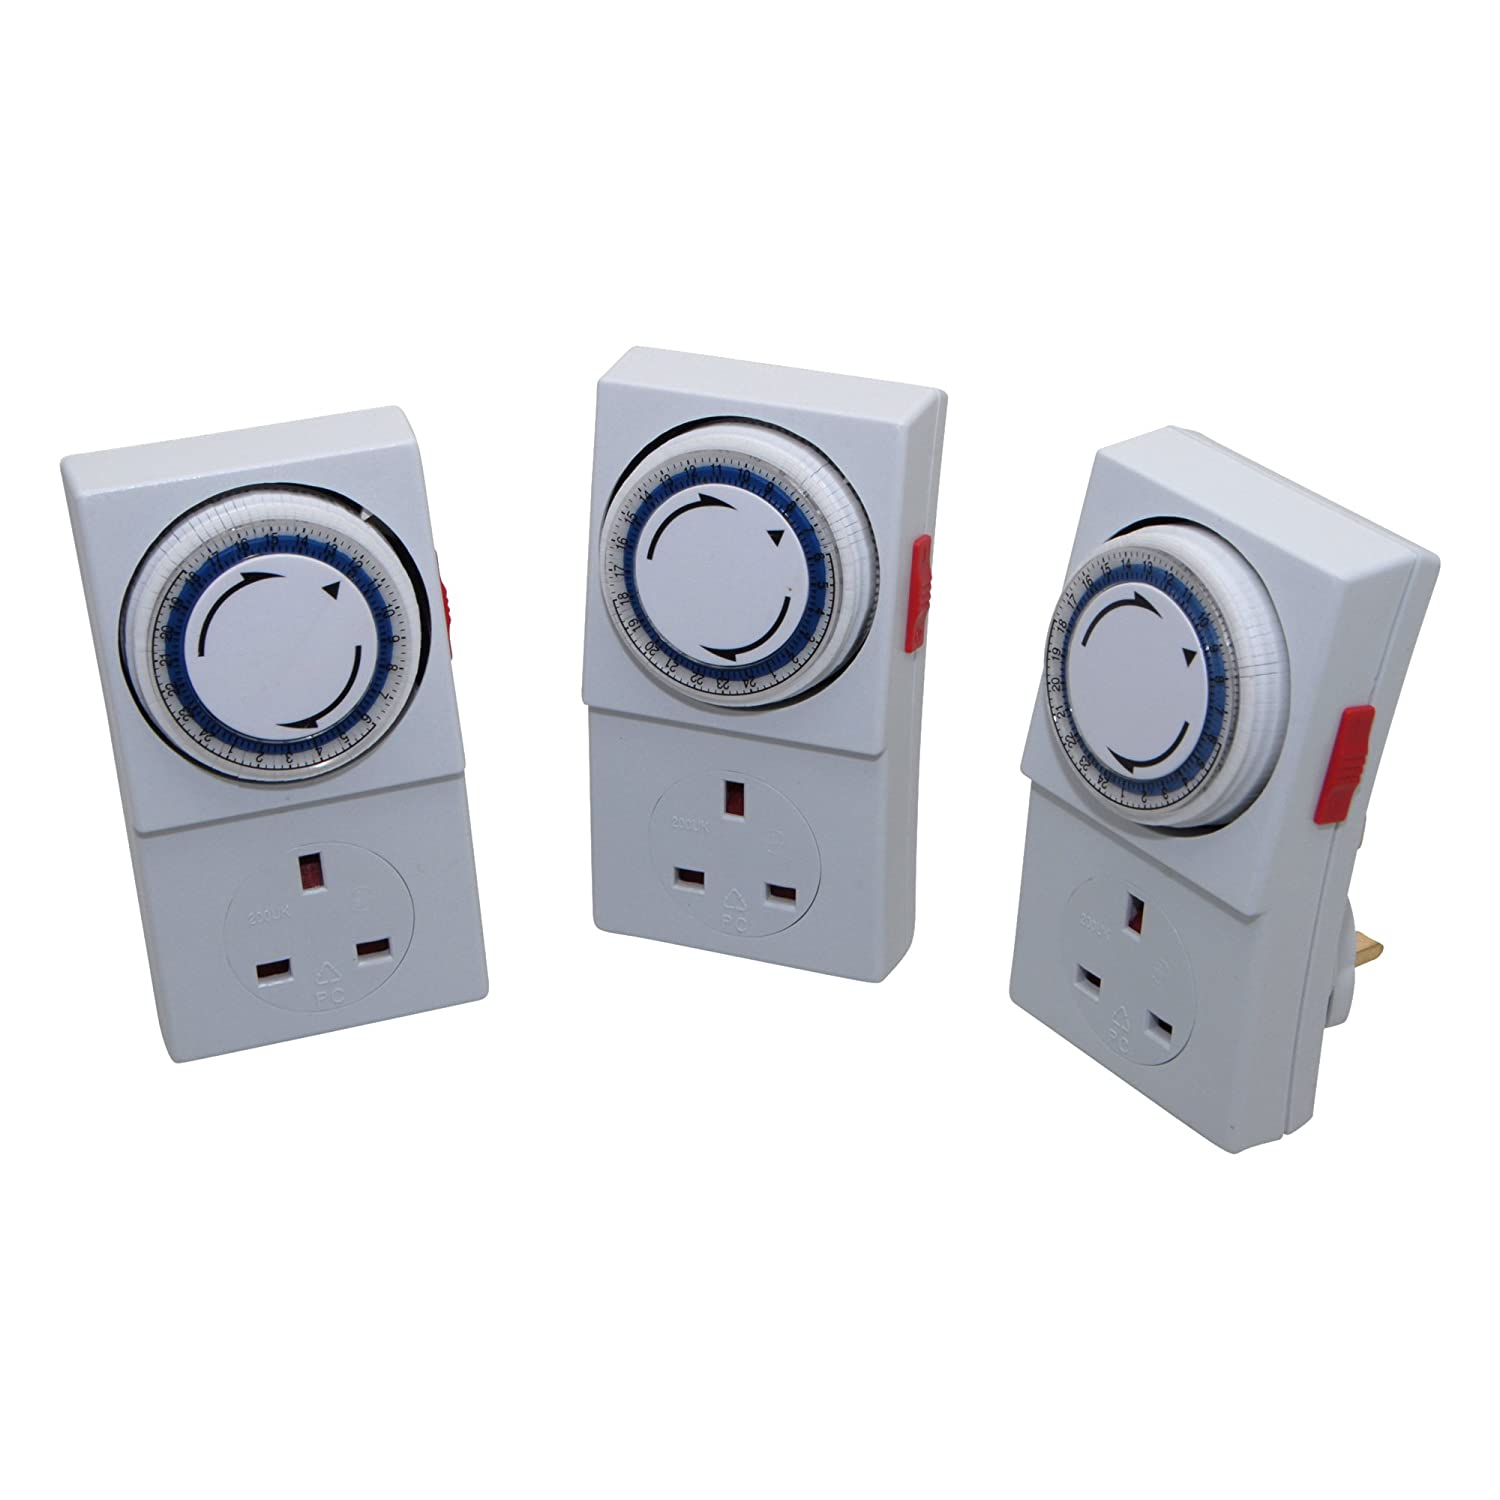 SMJ MPIT3C - Triple Pack Mechanical 24HR Plug In Timer SMJ Electrical MPIT3C-DX Hardware Wall Plugs Other Wall Plugs Clocks Clocks Stationery Products Stationery Products